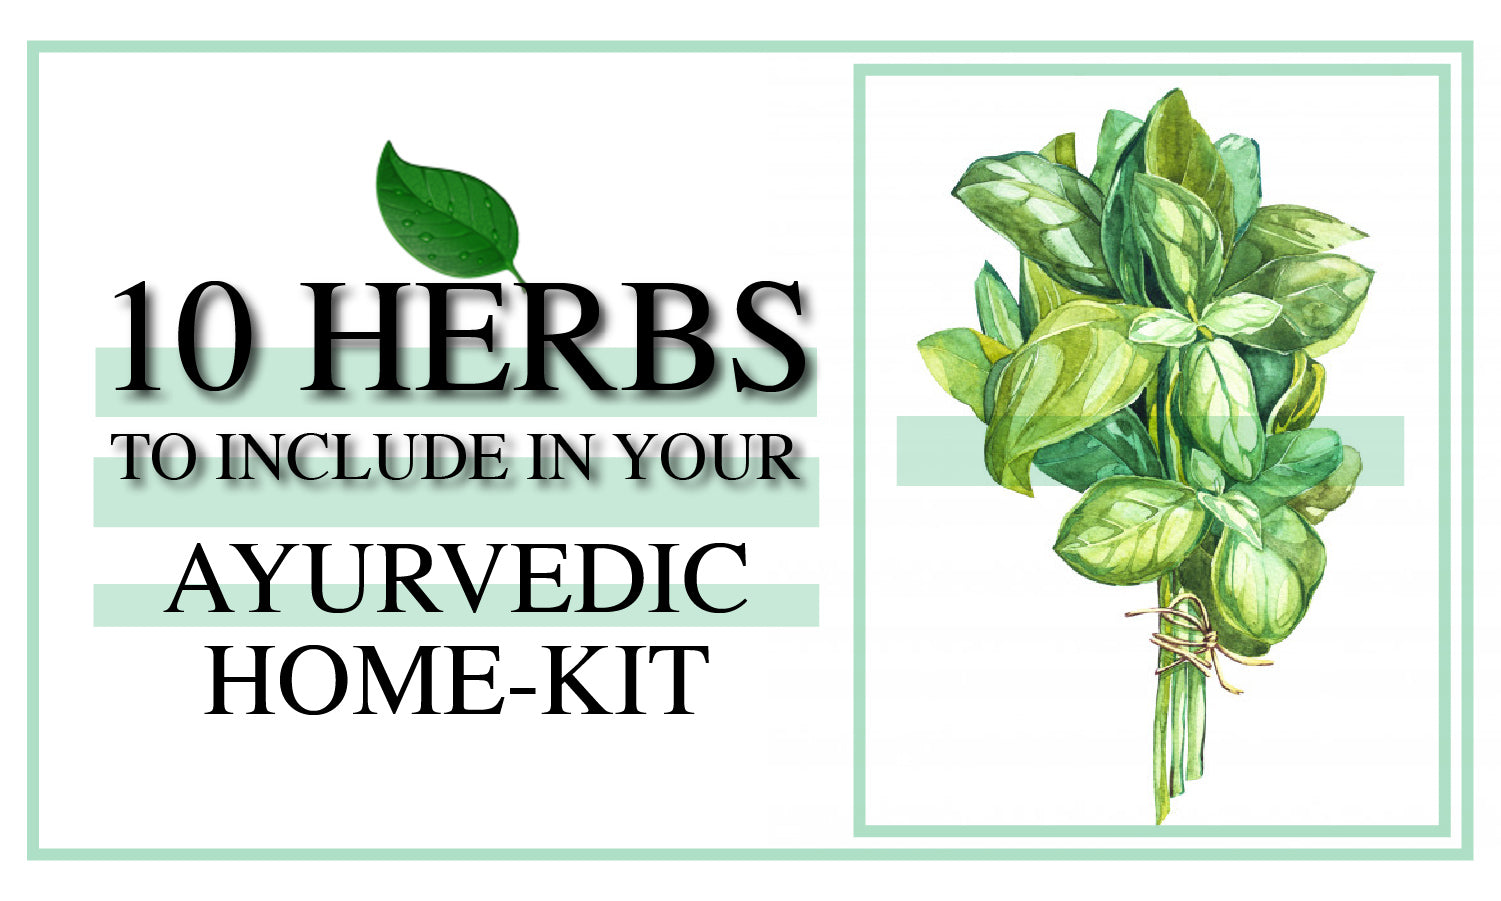 10 herbs to include in your Ayurvedic home-Kit